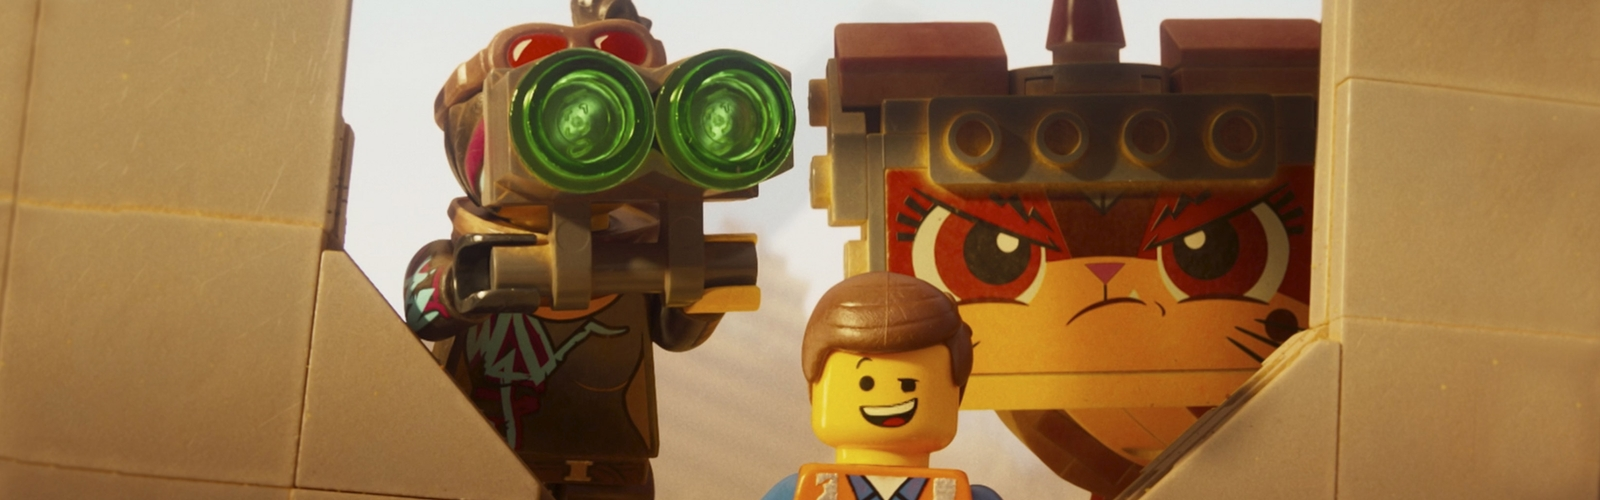 Emmet e Lucy THE LEGO MOVIE 2 in posa